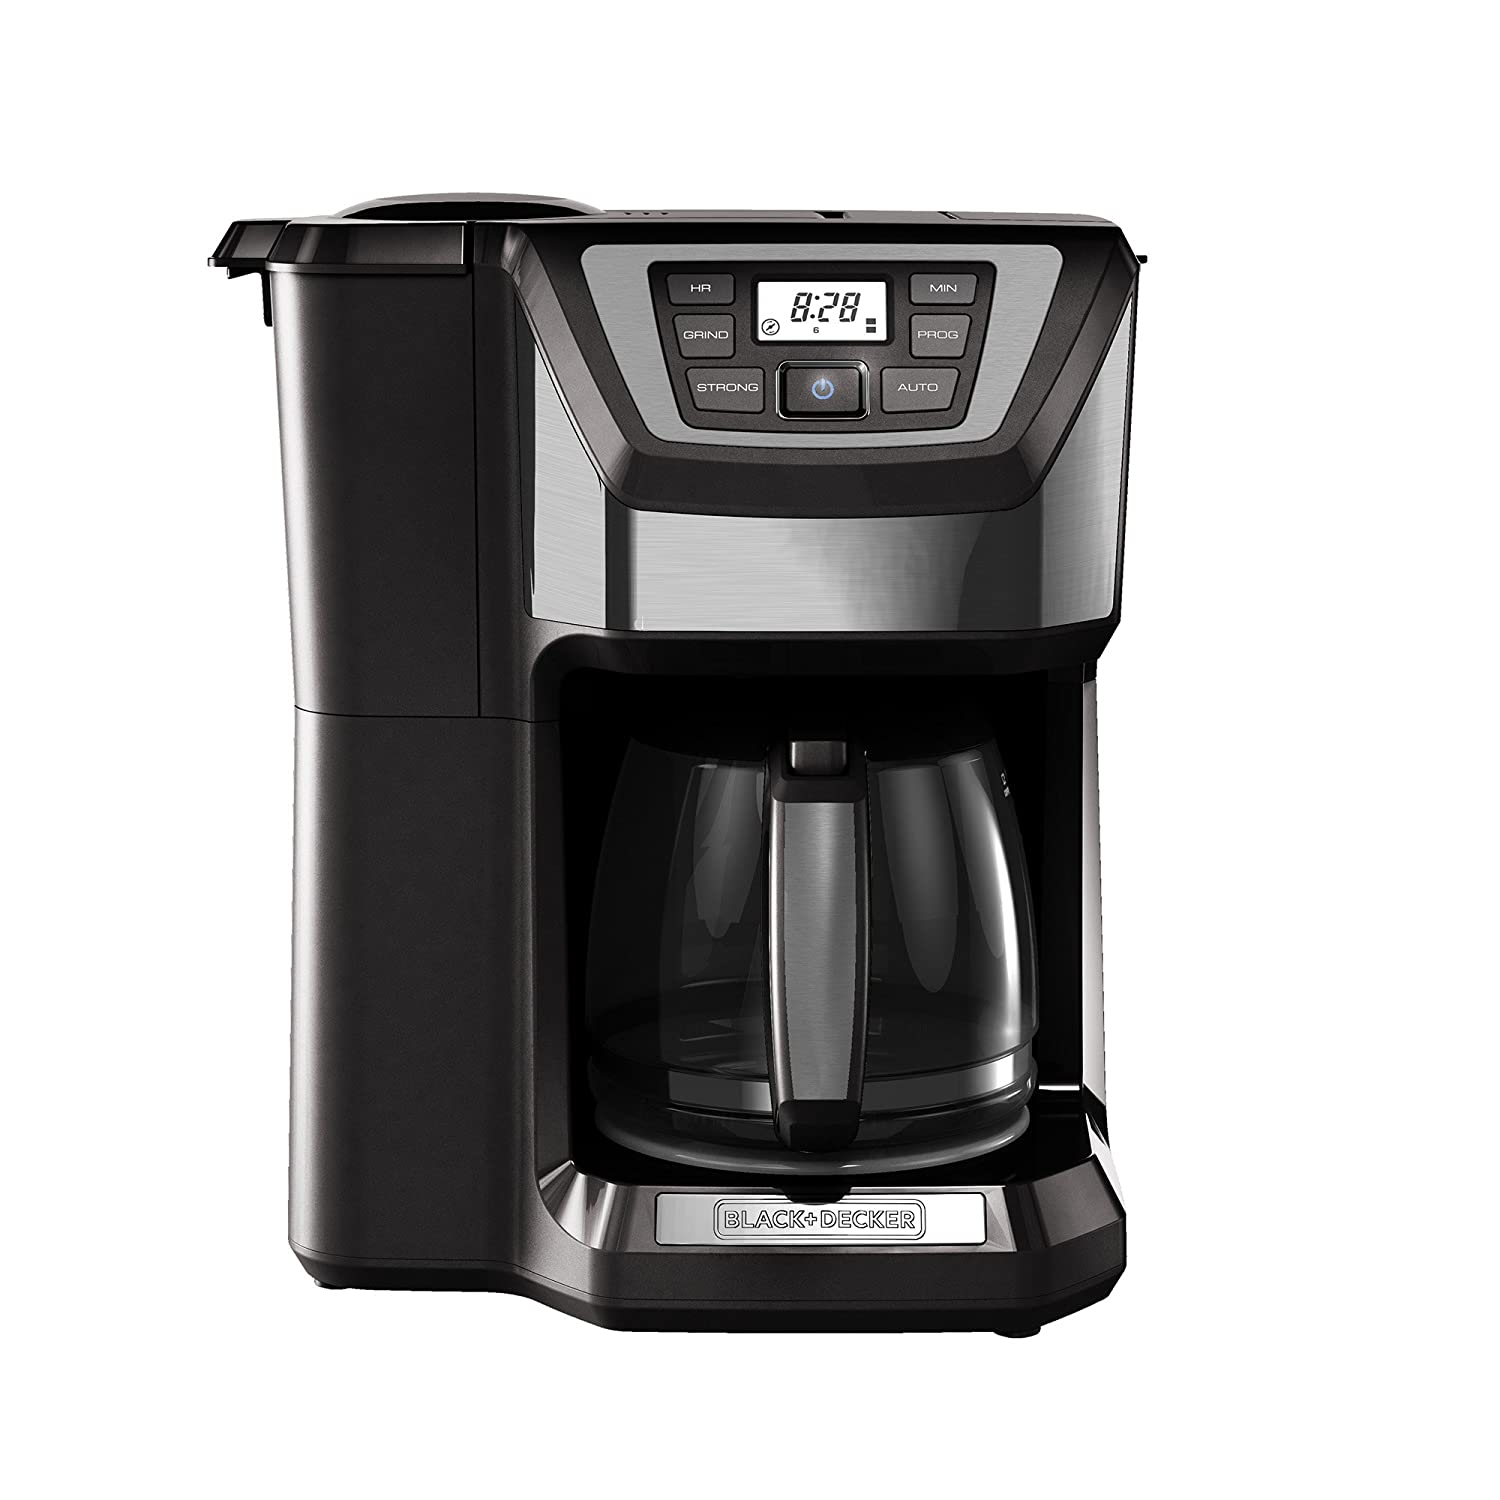 Black and decker coffee maker 12 cup programmable - Amazon Com Black Decker Cm5000gd 12 Cup Mill And Brew Coffee Maker Black Grey Kitchen Dining